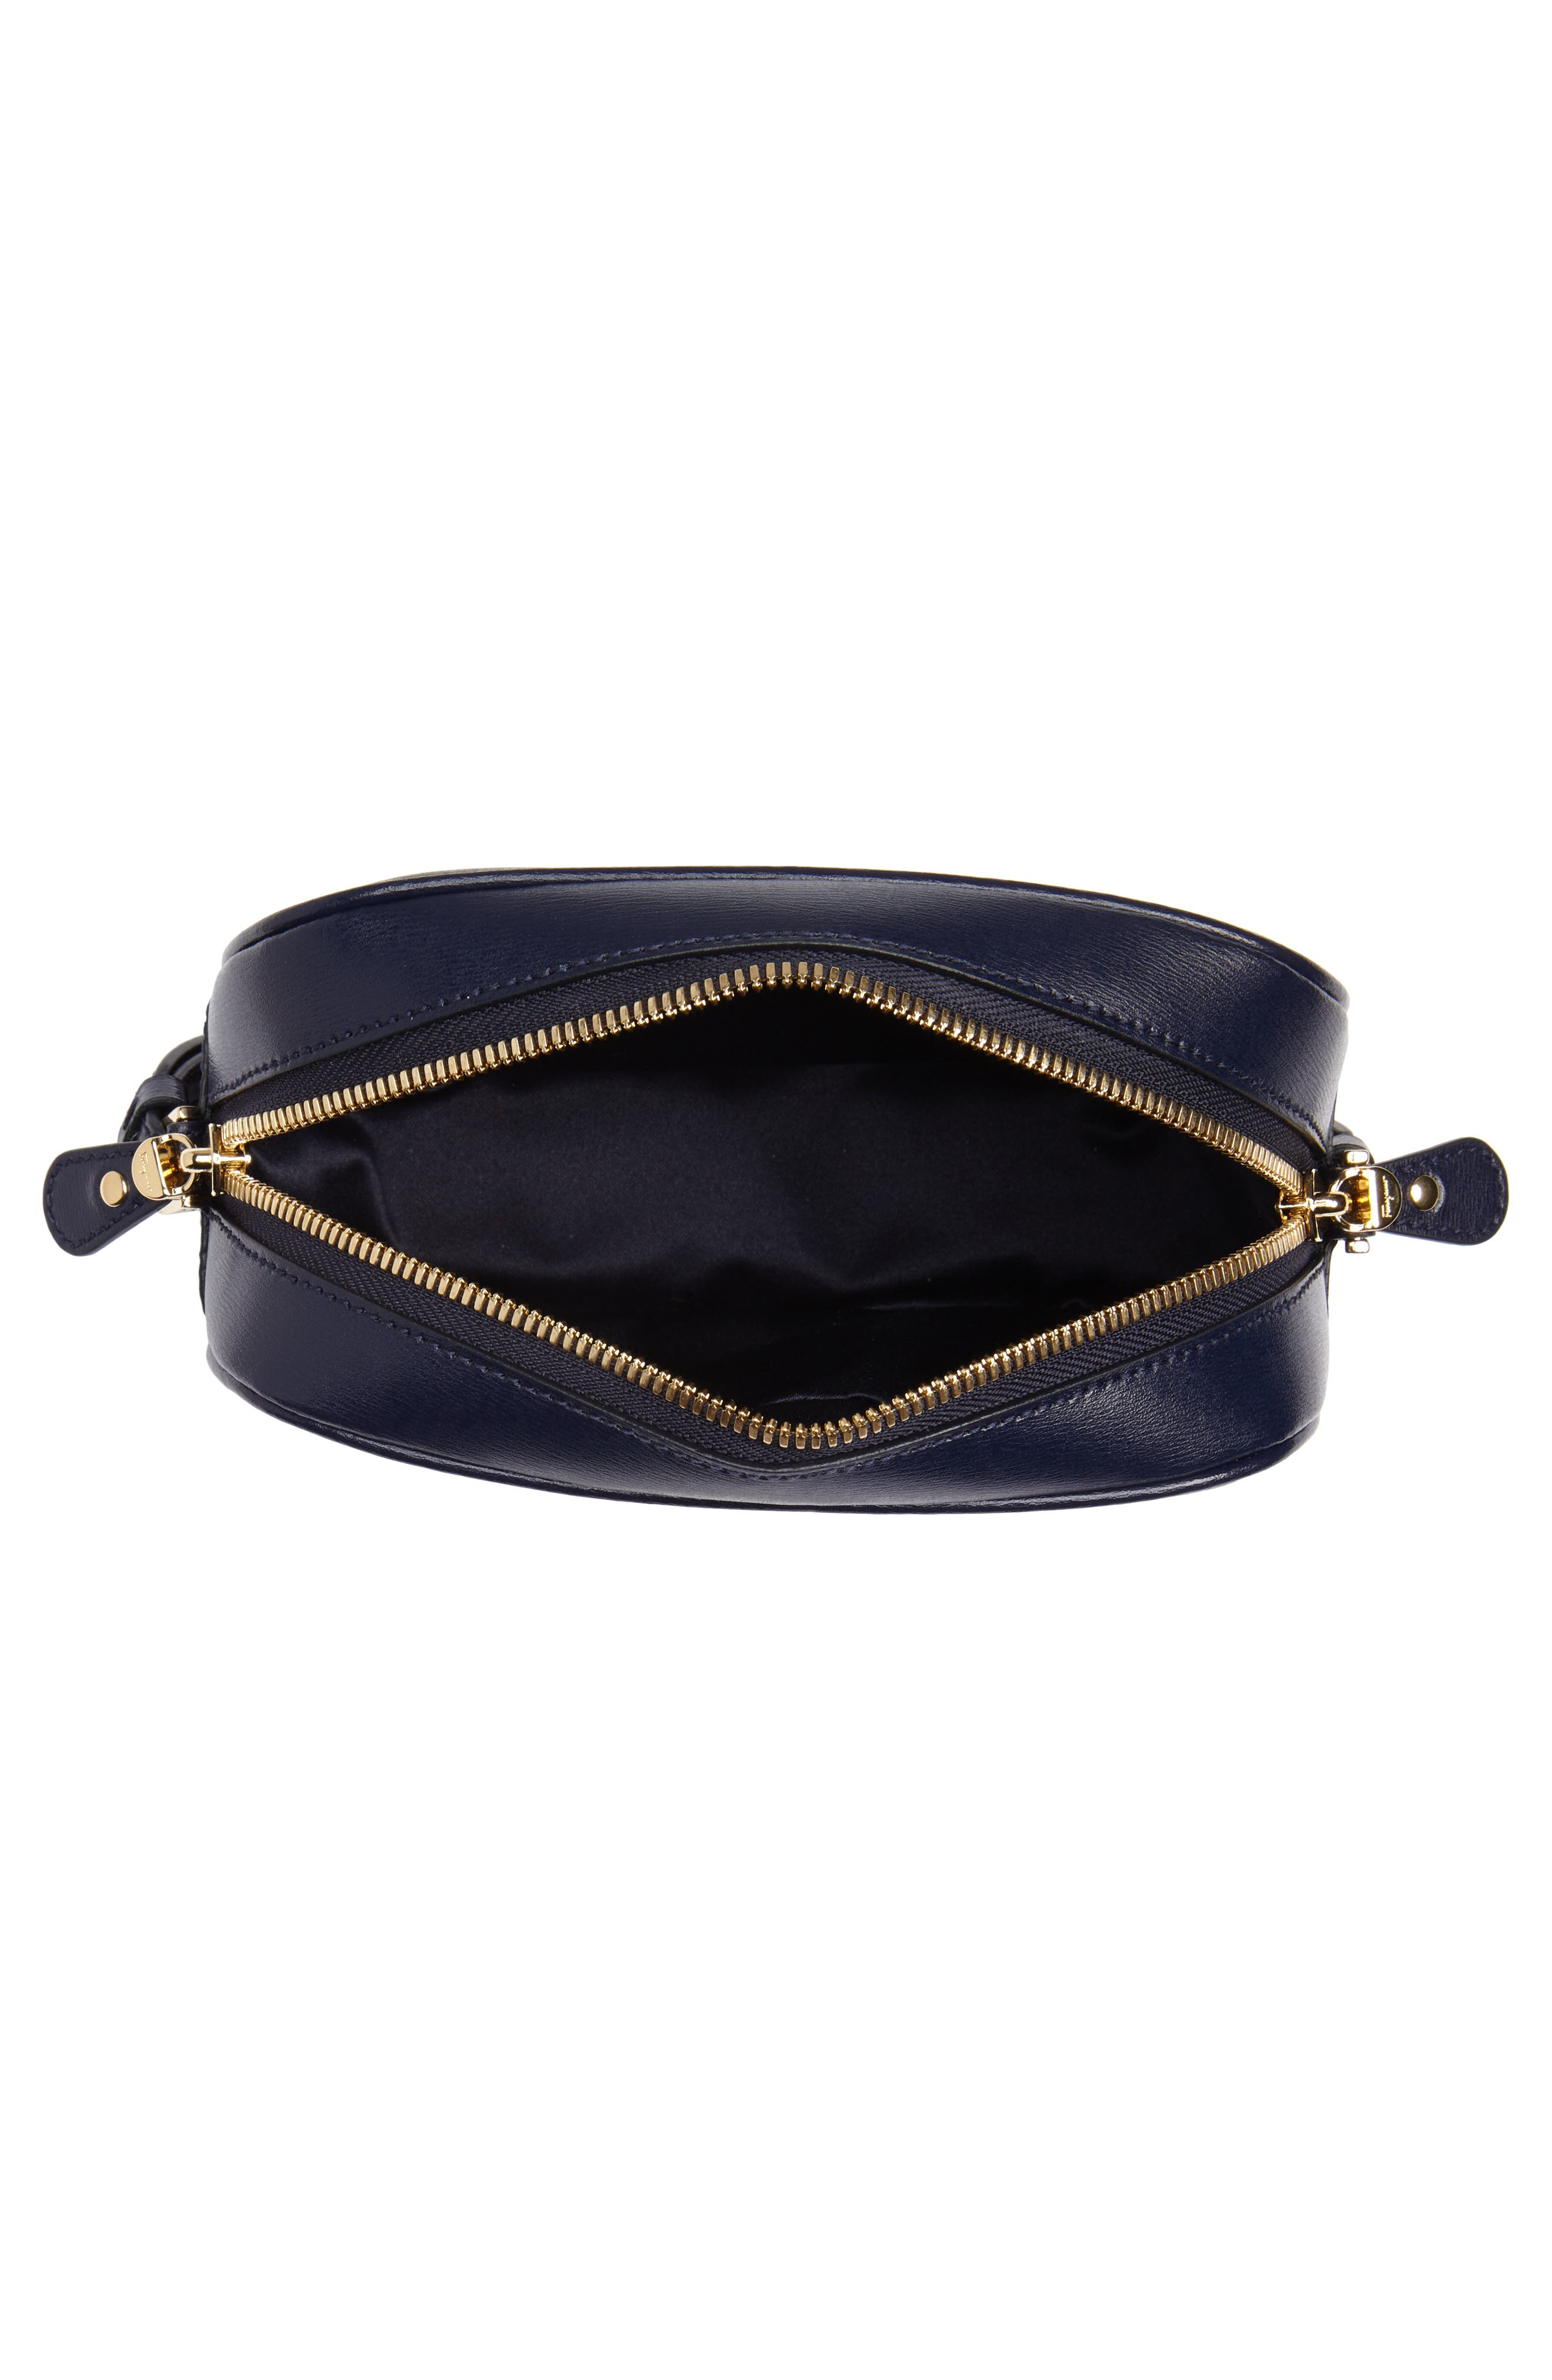 Gancio Metallic Leather Camera Bag,                             Alternate thumbnail 4, color,                             NAVY